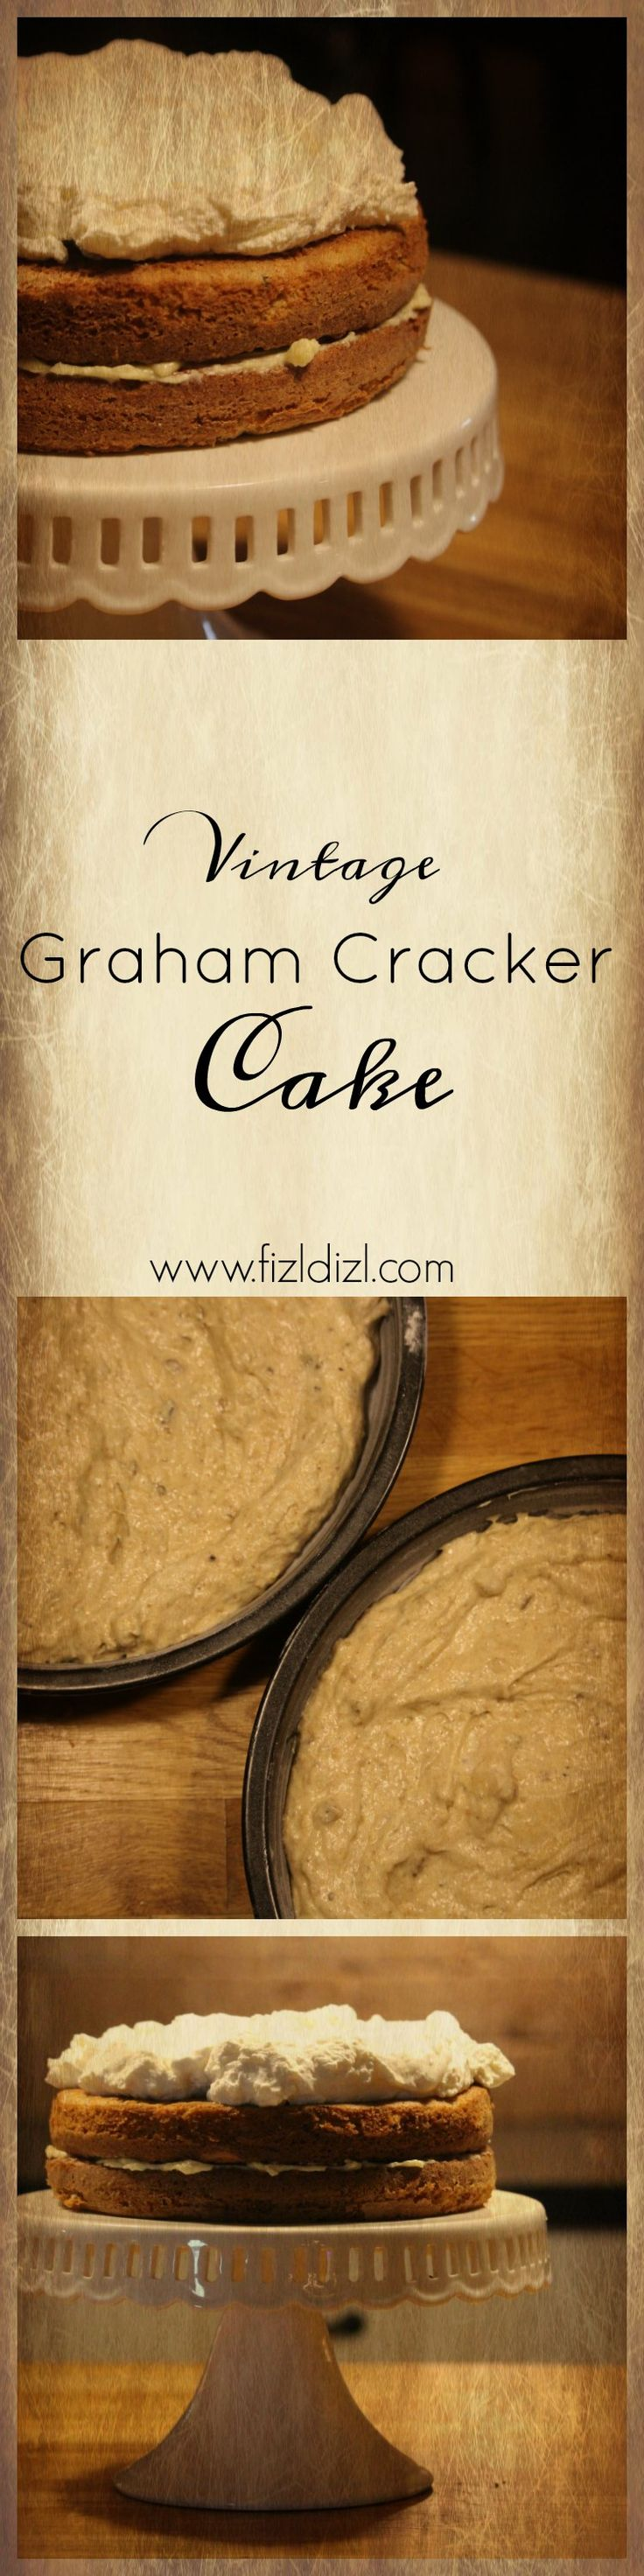 This old fashioned layer cake will delight everyone. This light & fluffy, buttery & nutty flavored cake is perfect for bridal showers, teas, and birthdays. Bring back a little bit of Grandma's kitchen with this Vintage Graham Cracker Cake.